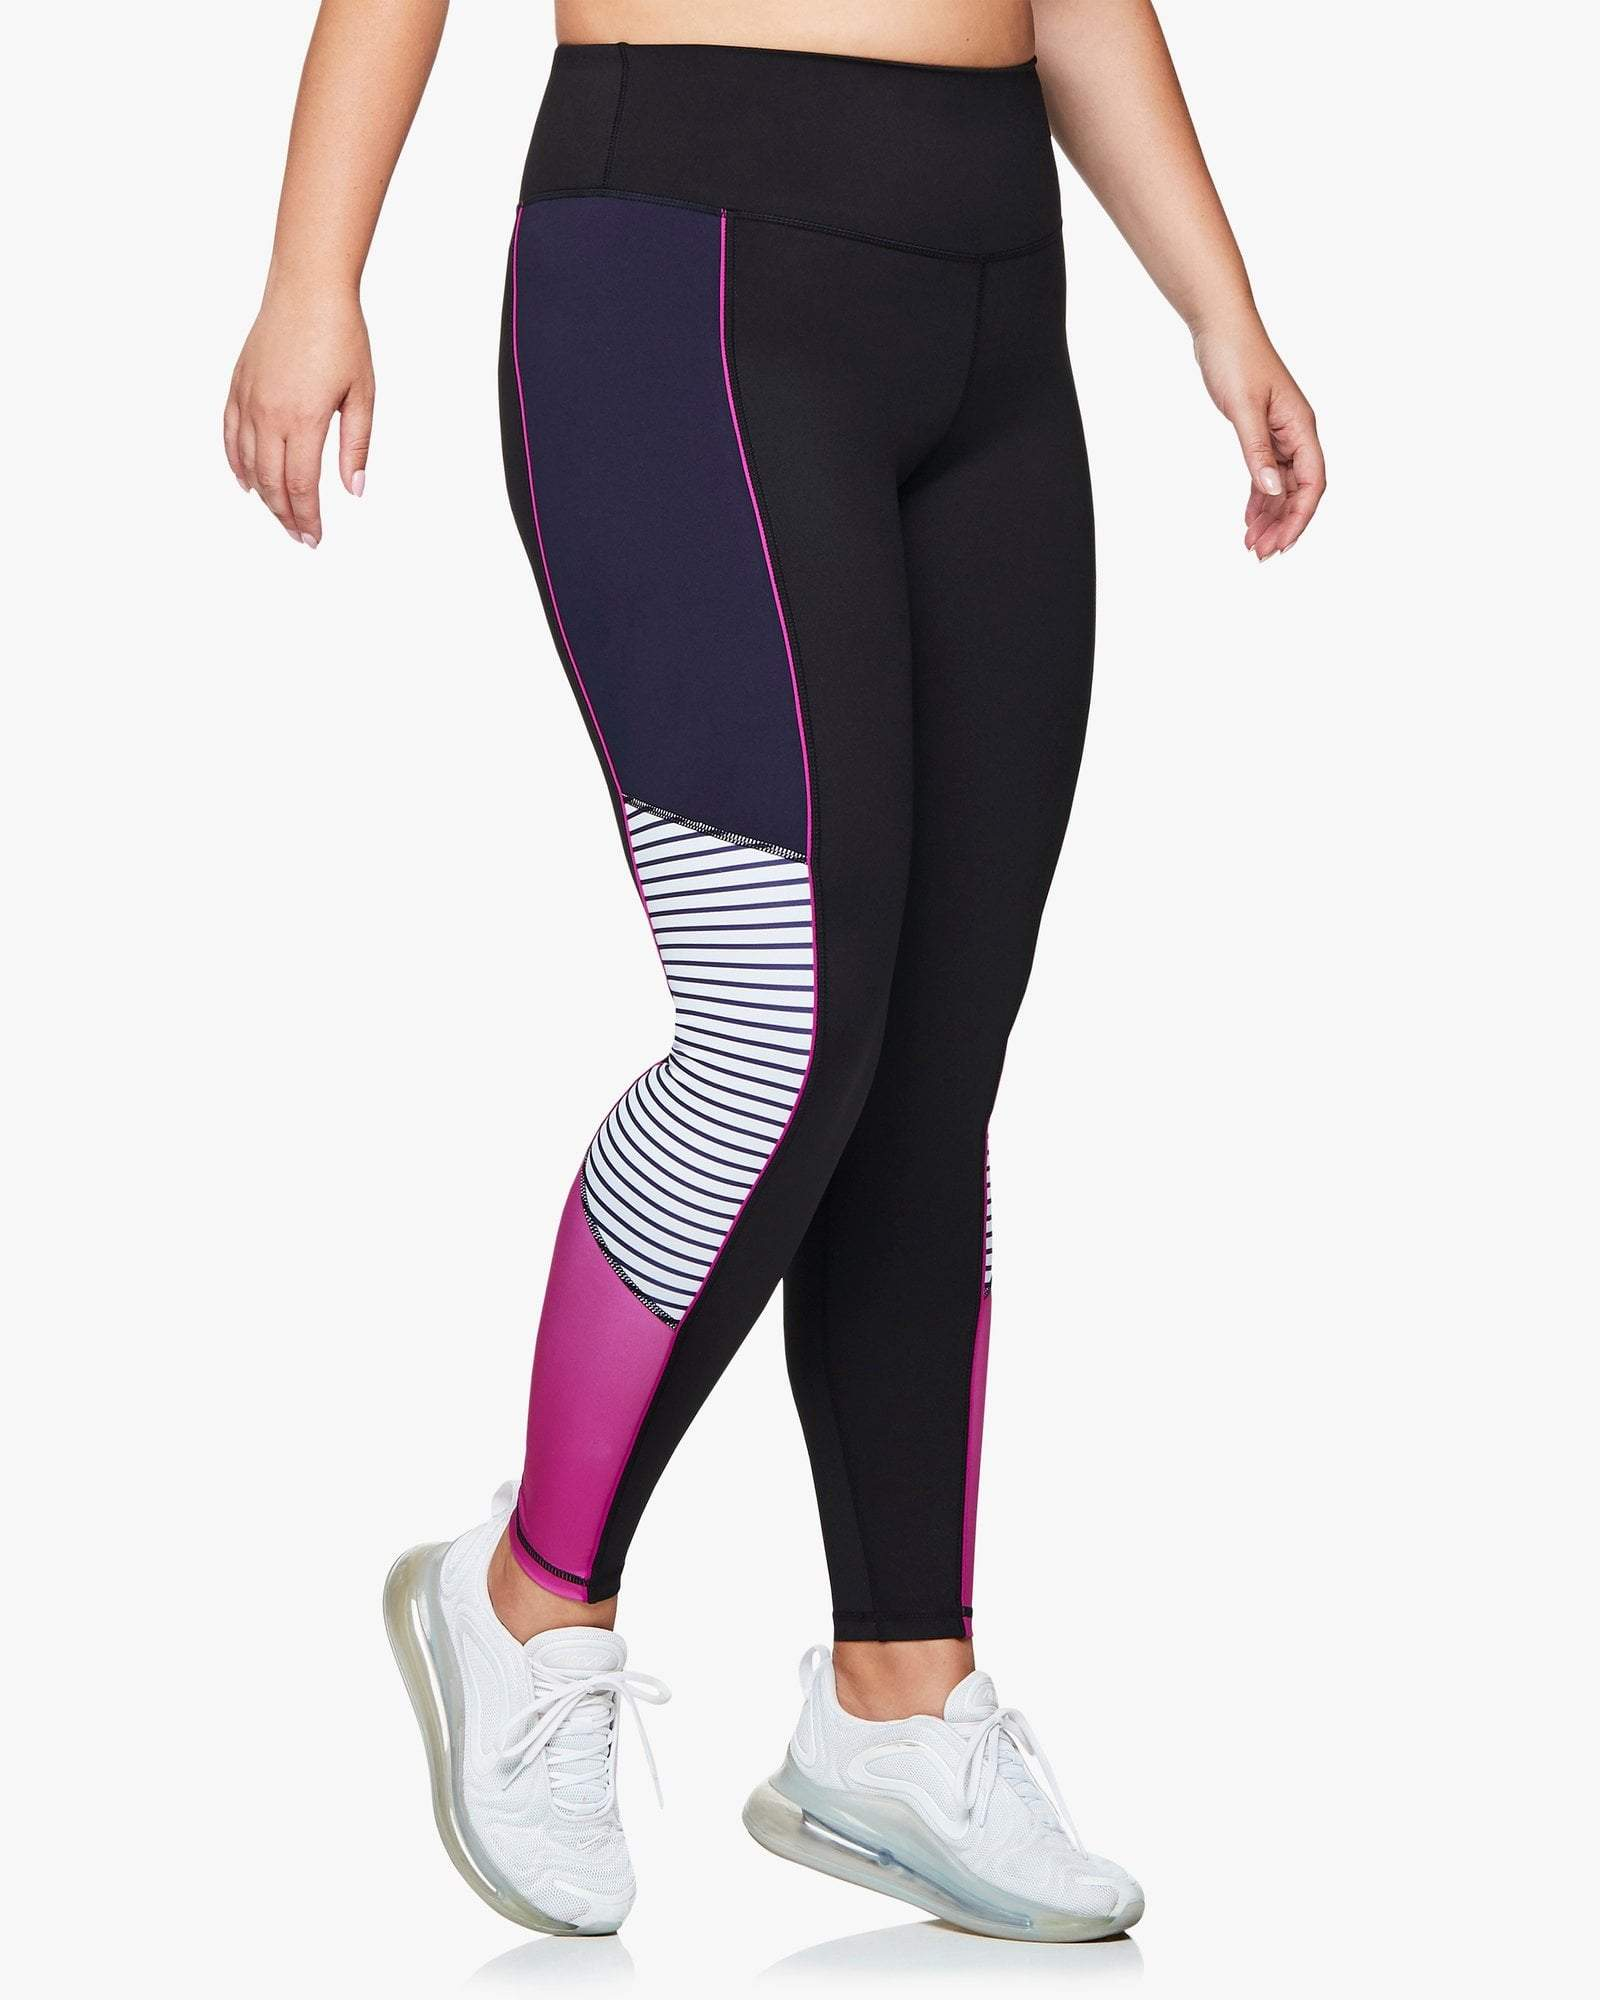 La Brea Full-Length Leggings